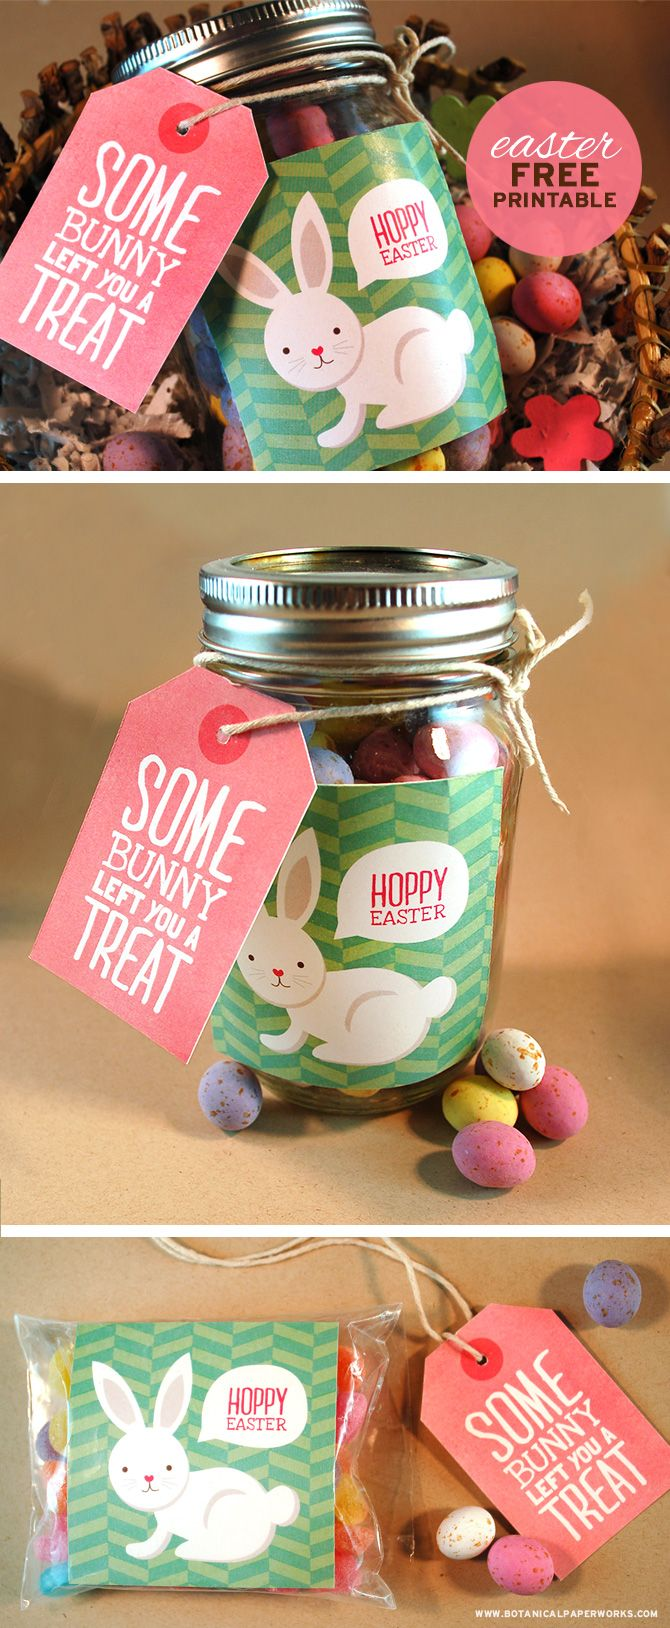 Best 25 some bunny loves you ideas on pinterest valentines day these adorable free printables are a great way to dress up your treat packages for friends diy easter gifts negle Choice Image